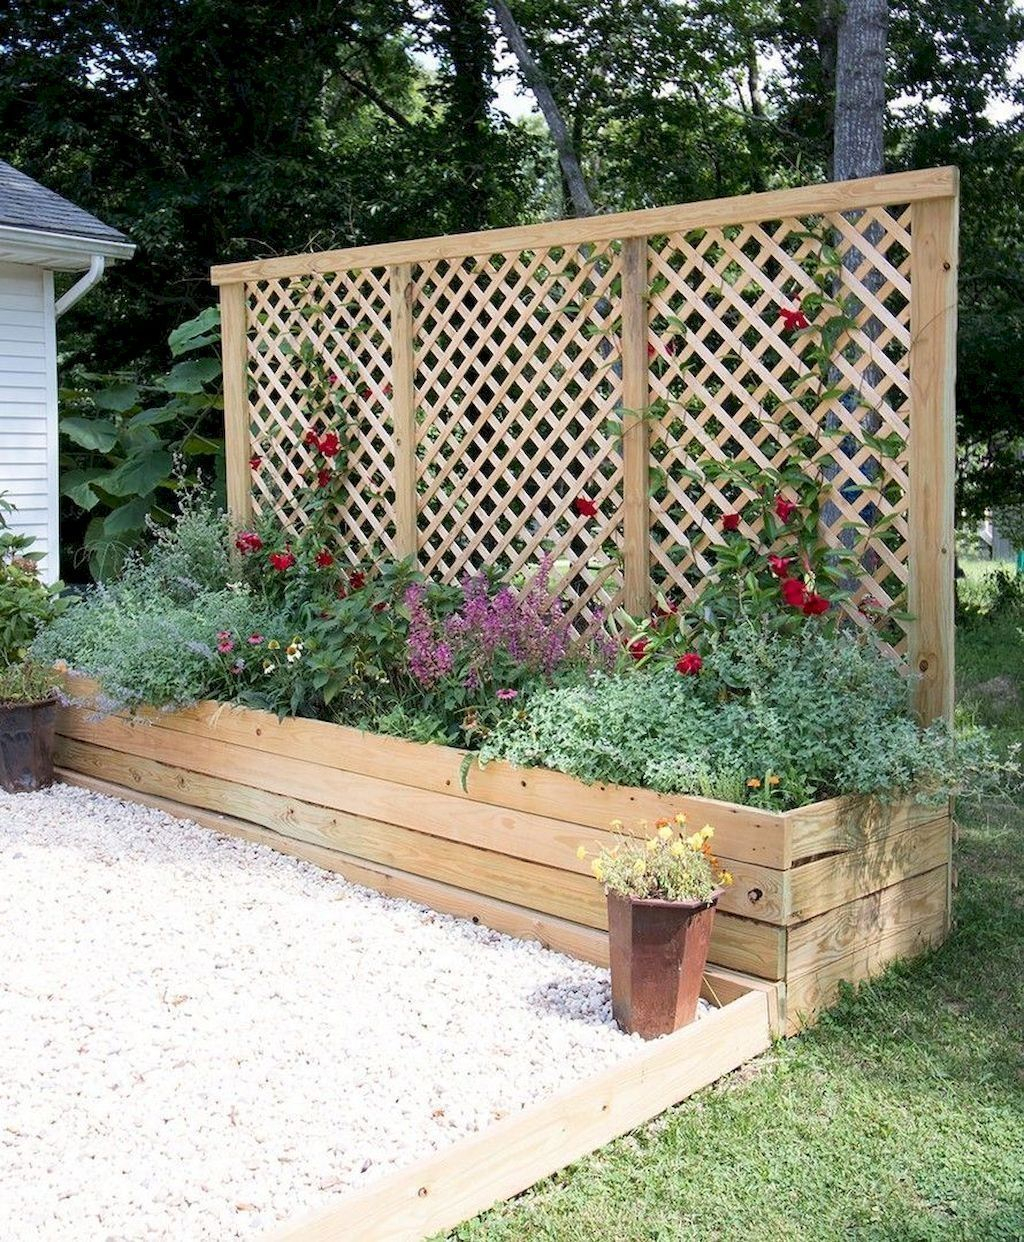 Best Raised Garden Bed For Backyard Landscaping Ideas To Try Asap04